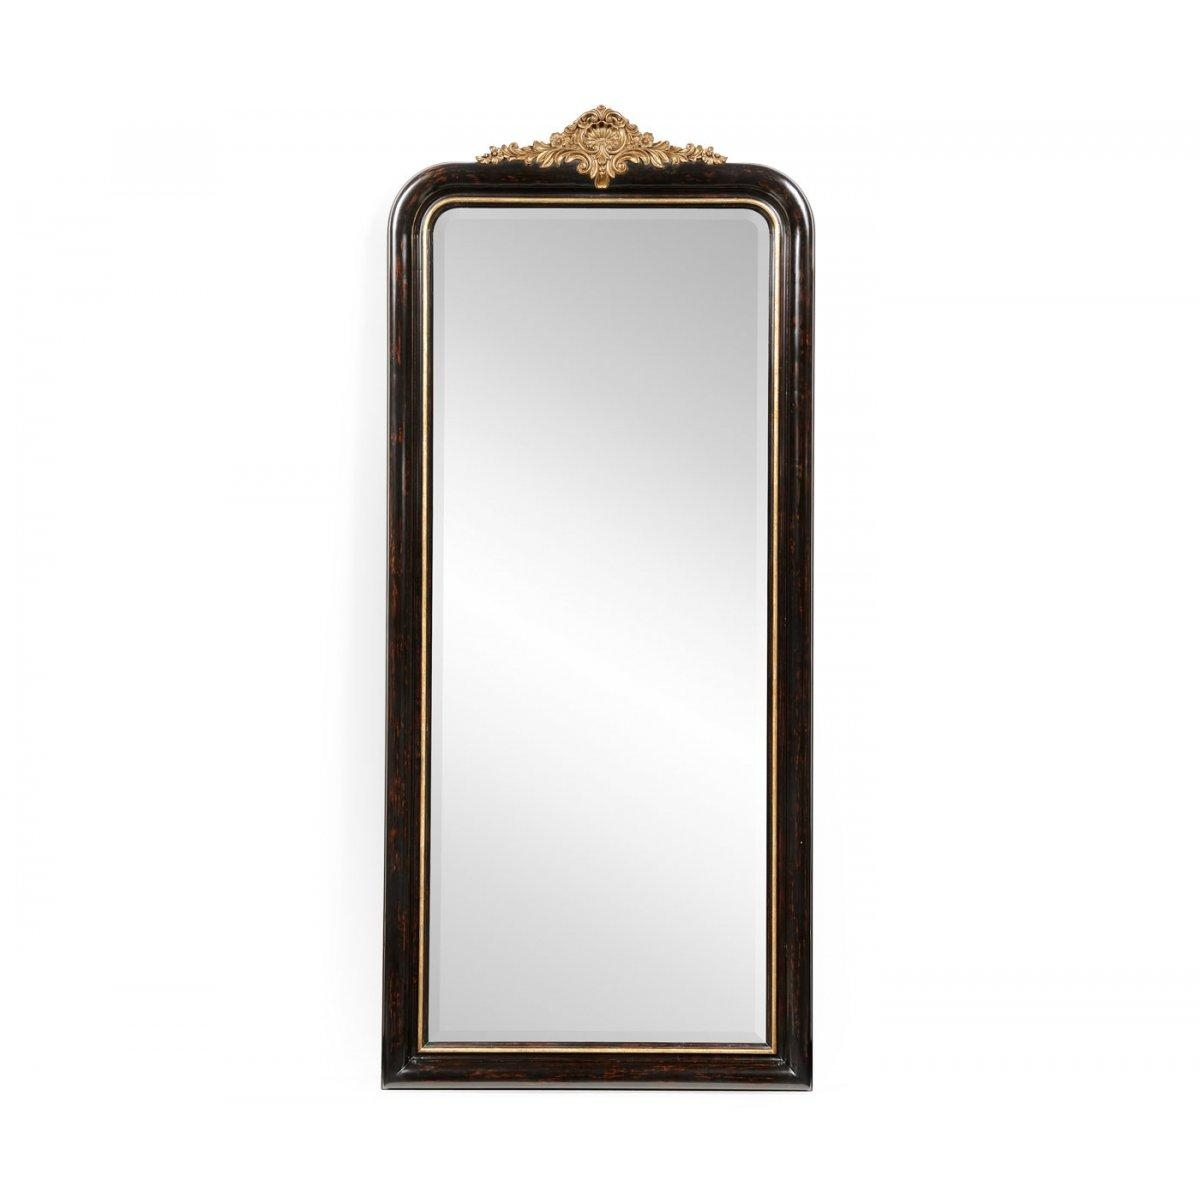 Full Length Black Mirror Gilded French Style | Swanky Interiors Throughout French Style Full Length Mirror (Image 11 of 20)